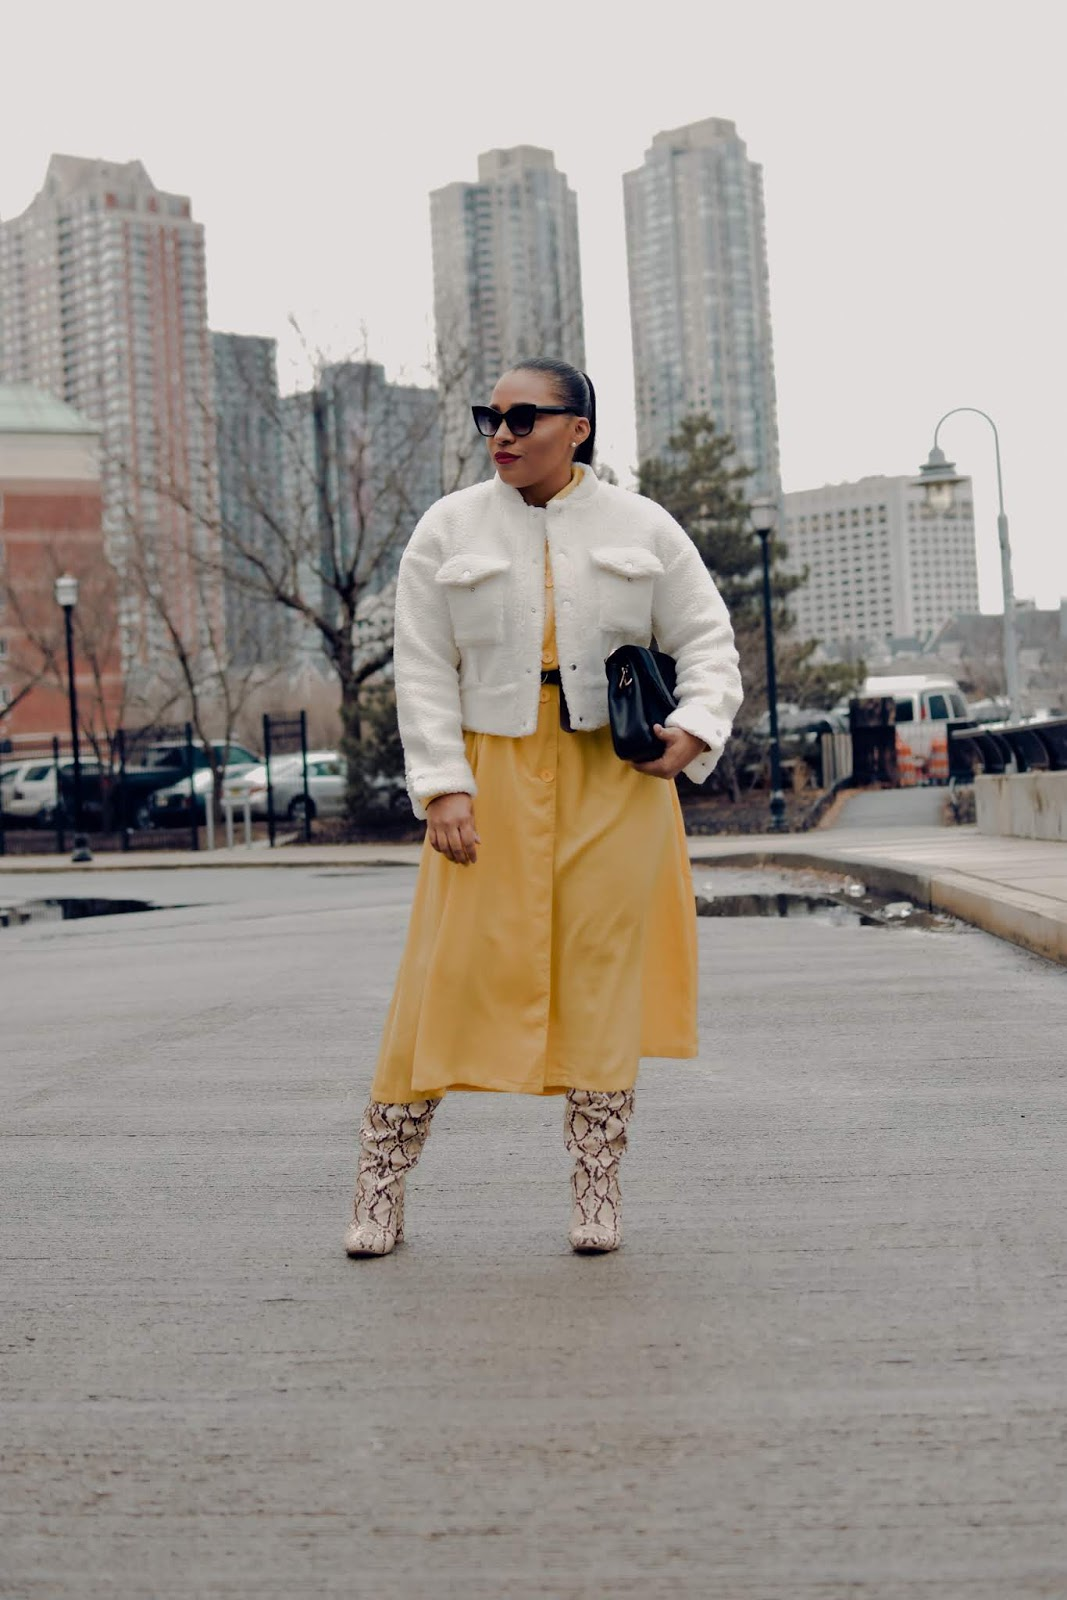 shein, shein clothing reviews, nyfw, new york fahsion week, nyfw streetstyle, over the knee boots, shein coats